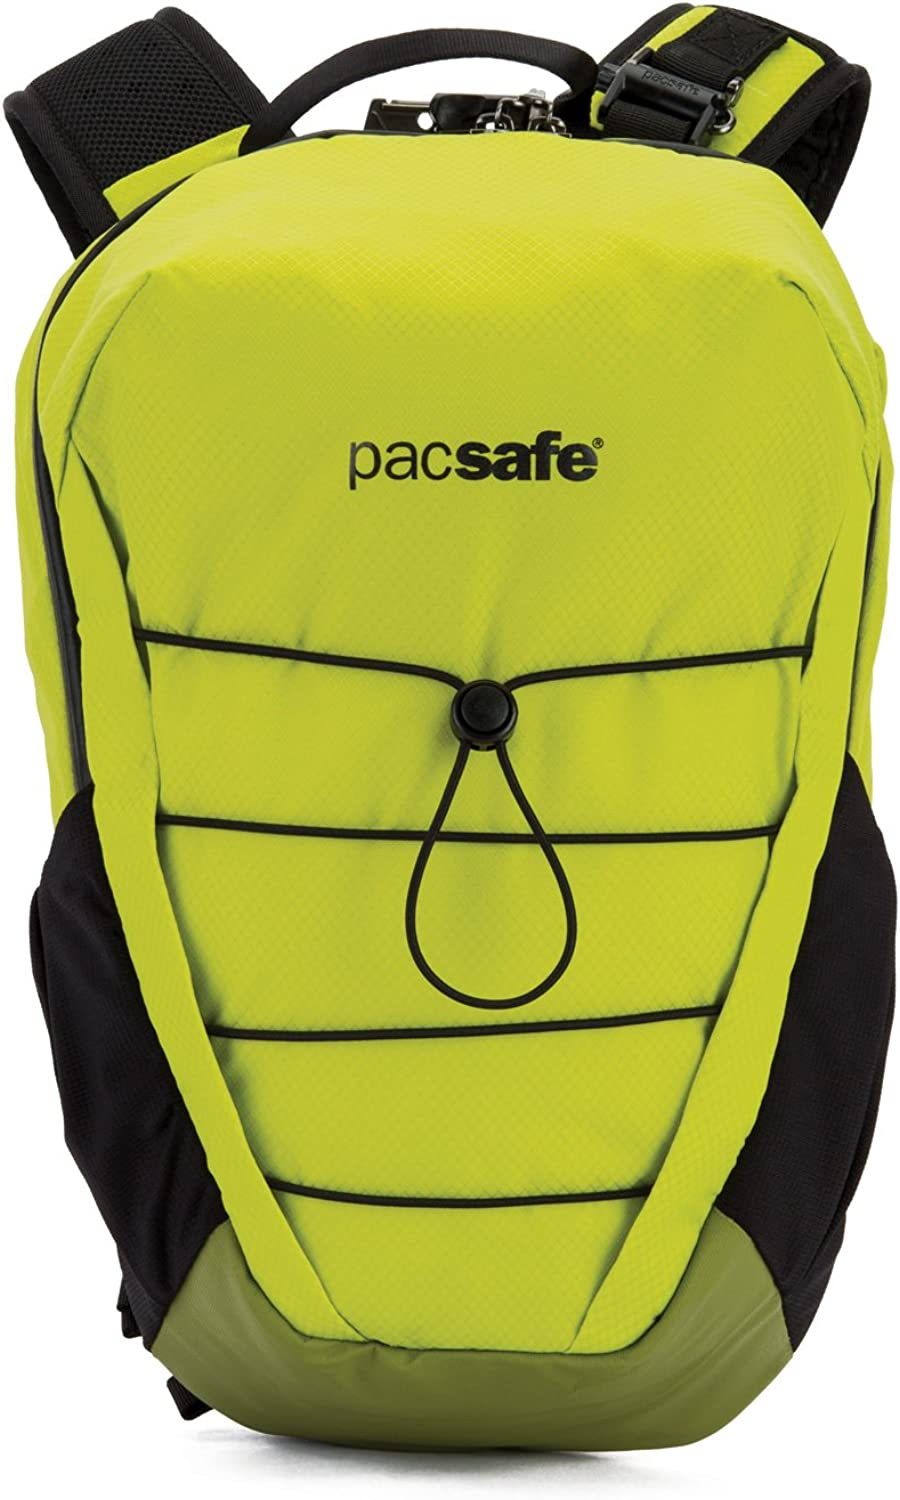 PacSafe Venturesafe X12 Anti-Theft Outdoor Daypack